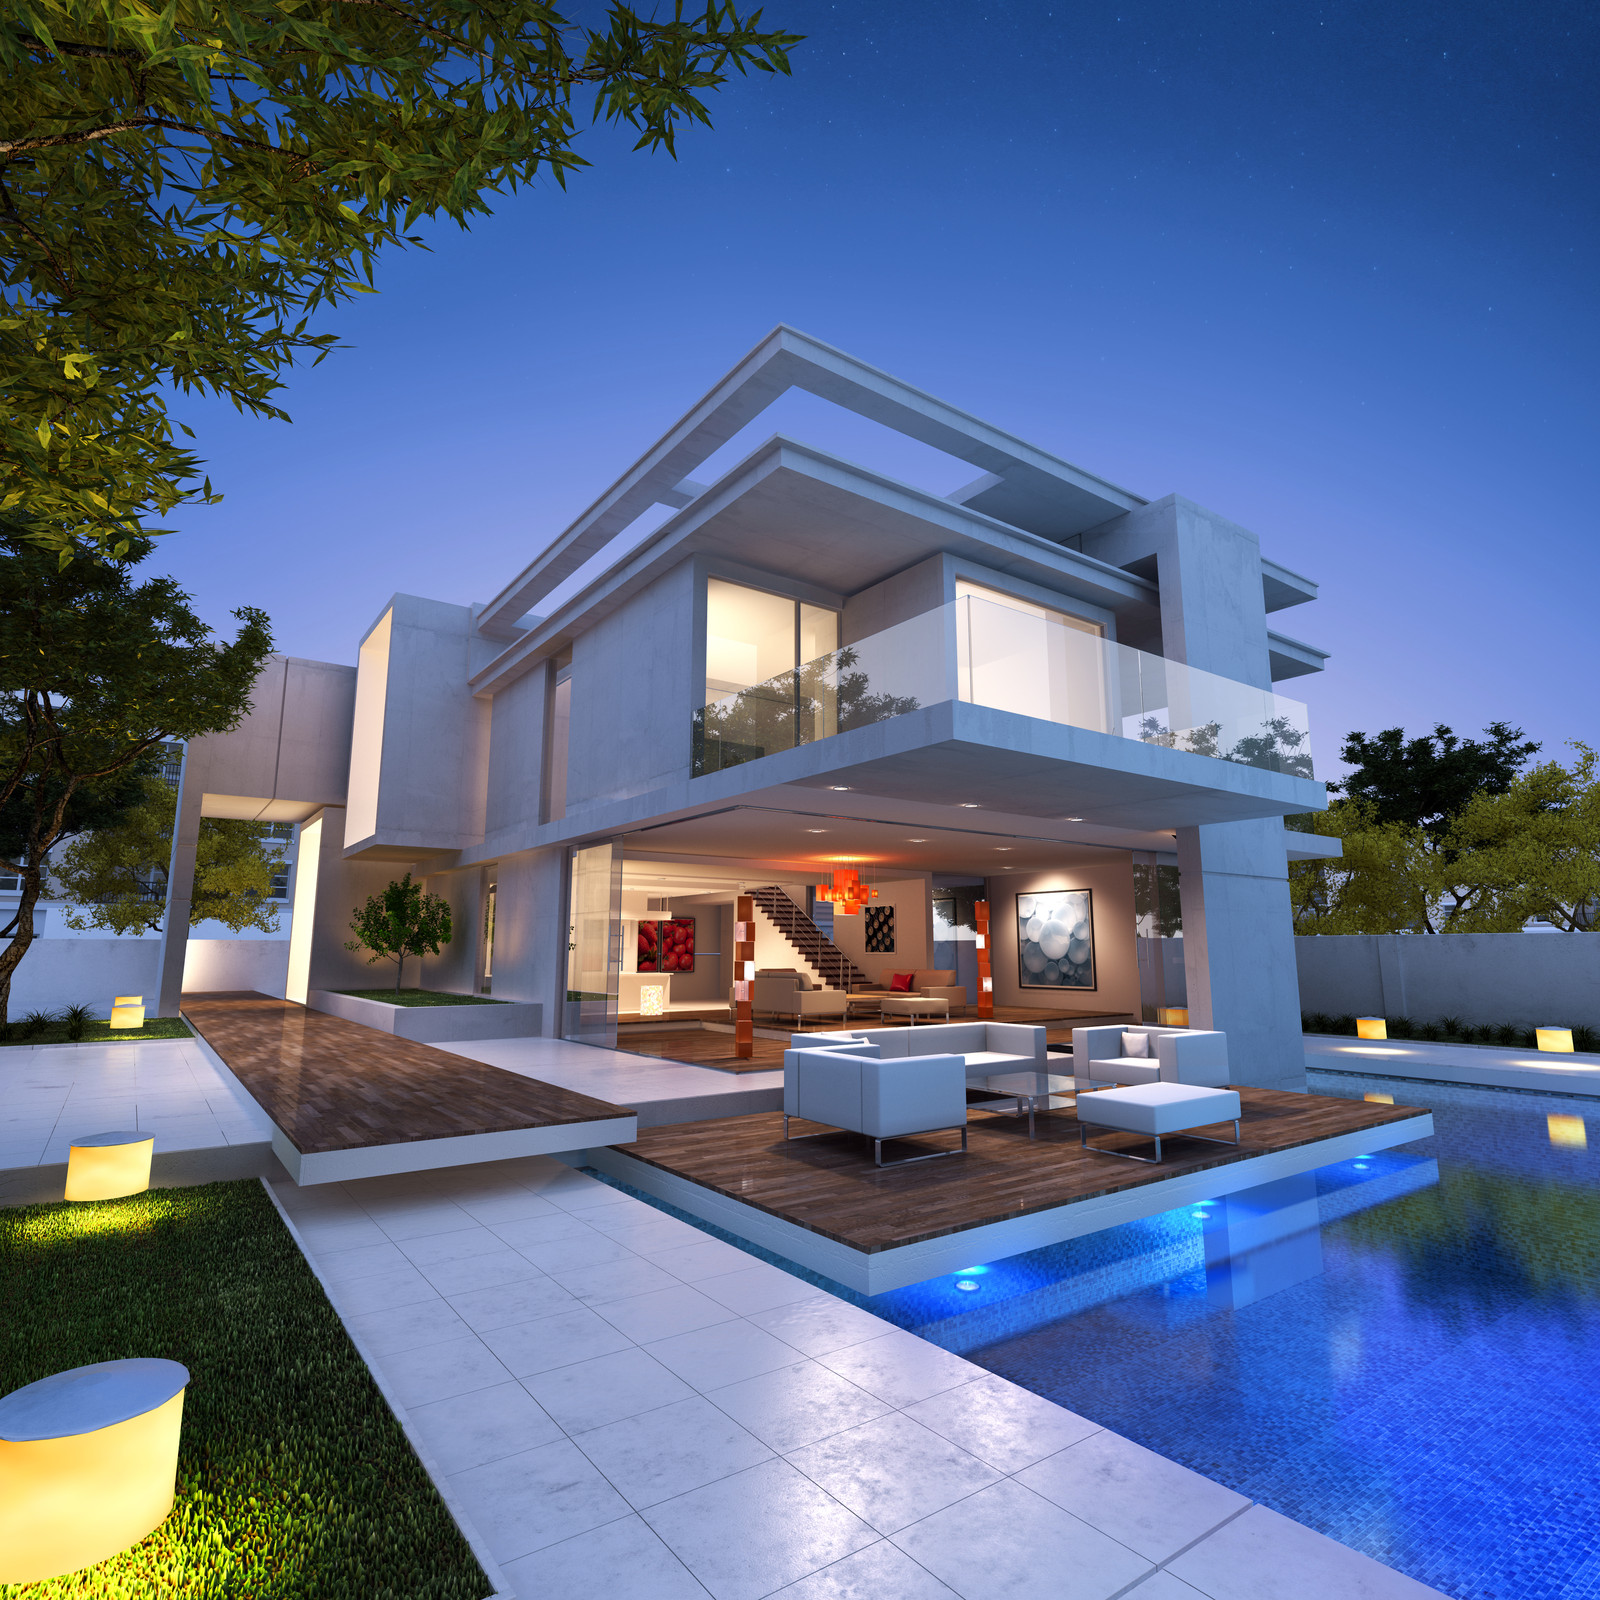 Excellent images about modern homes on pinterest architects and architecture qjrocfz